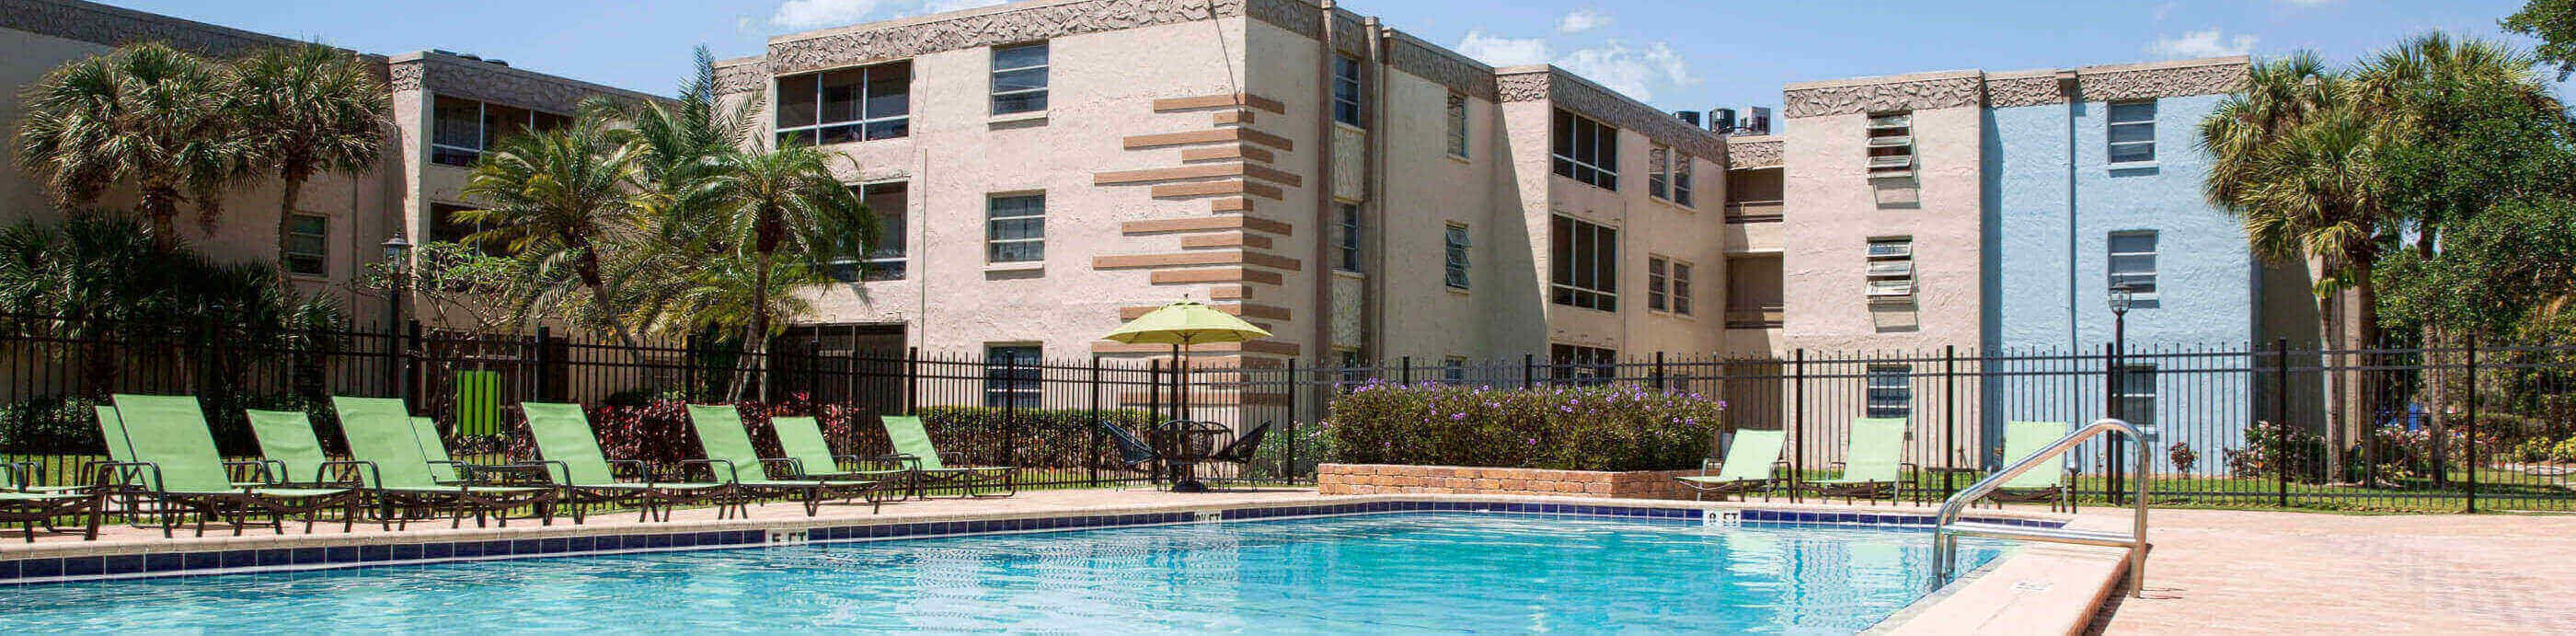 Private Swimming Pool at Harlow at Gateway, Florida, 33702